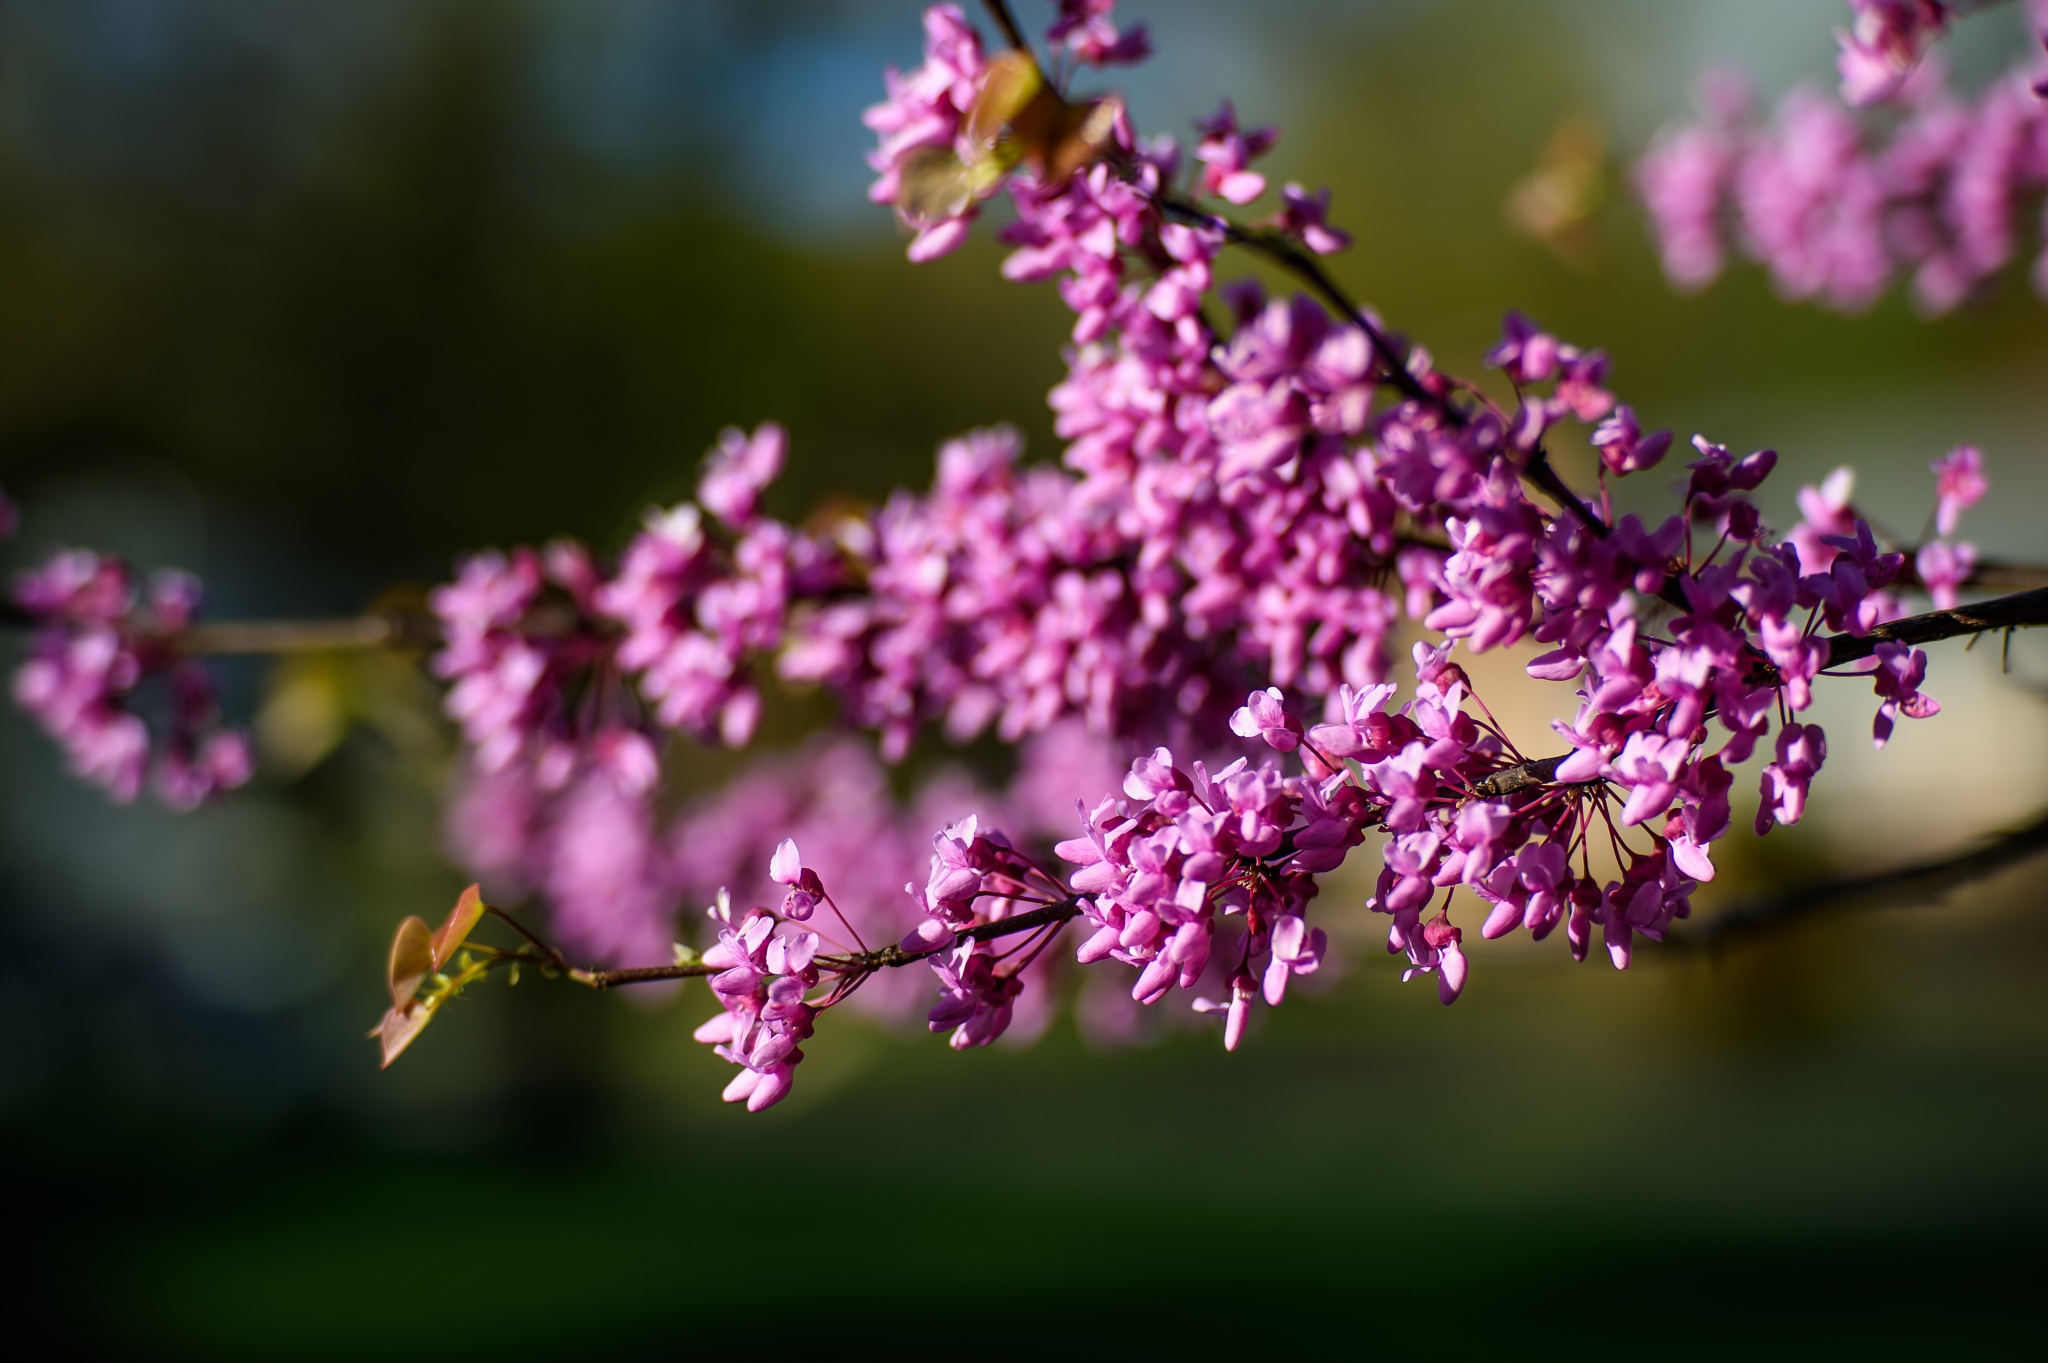 Redbud Blossoms by Geoff Livingston